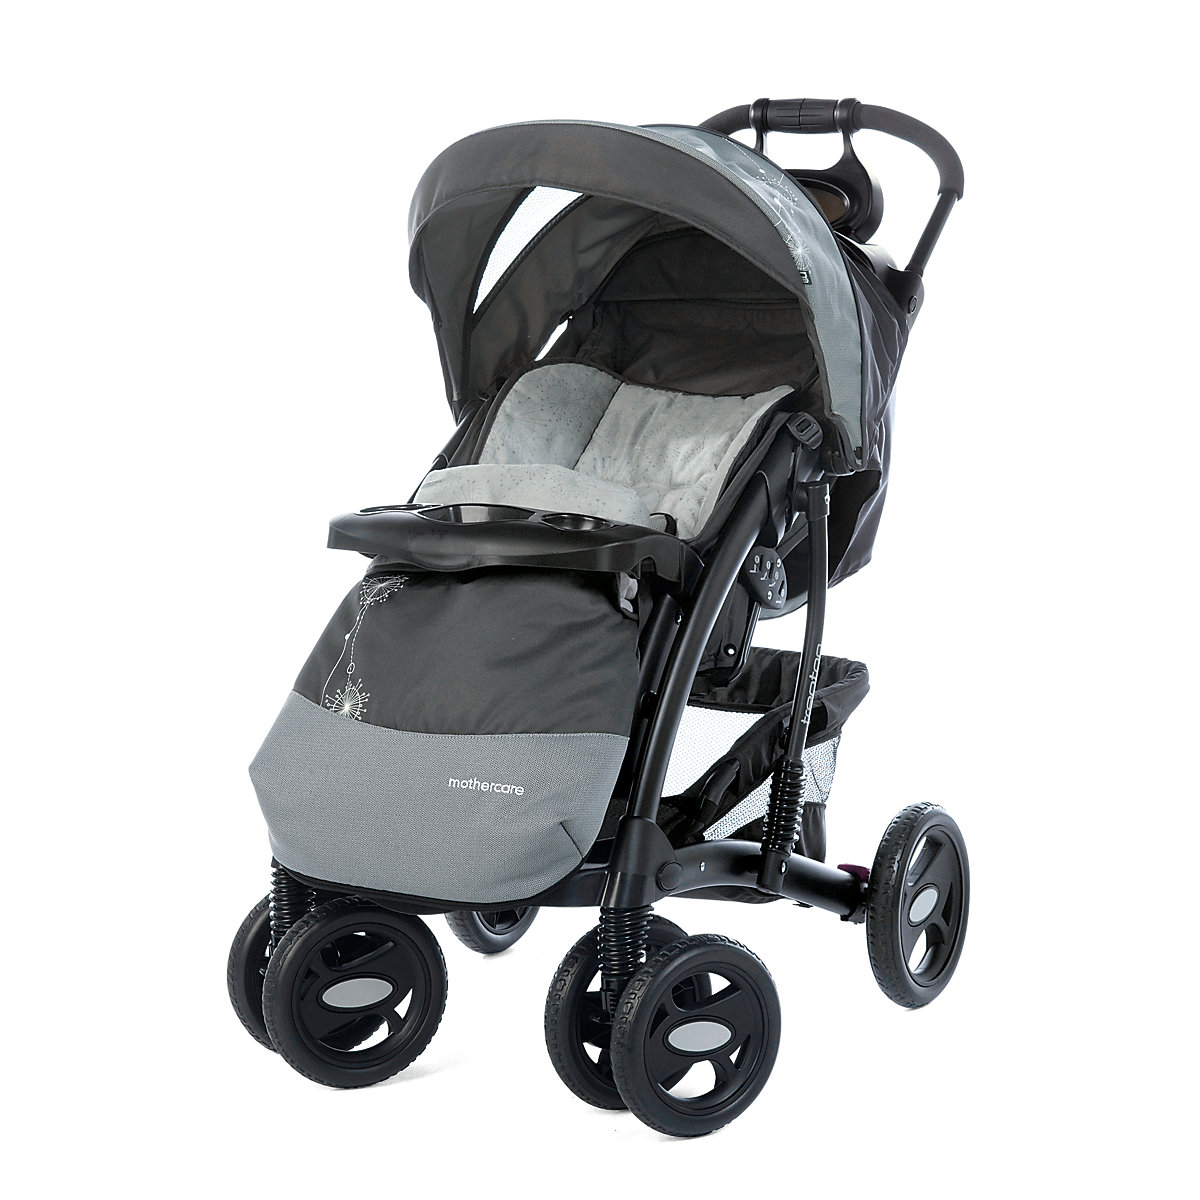 Mothercare Trenton Deluxe Pushchair - Compare Prices at ...